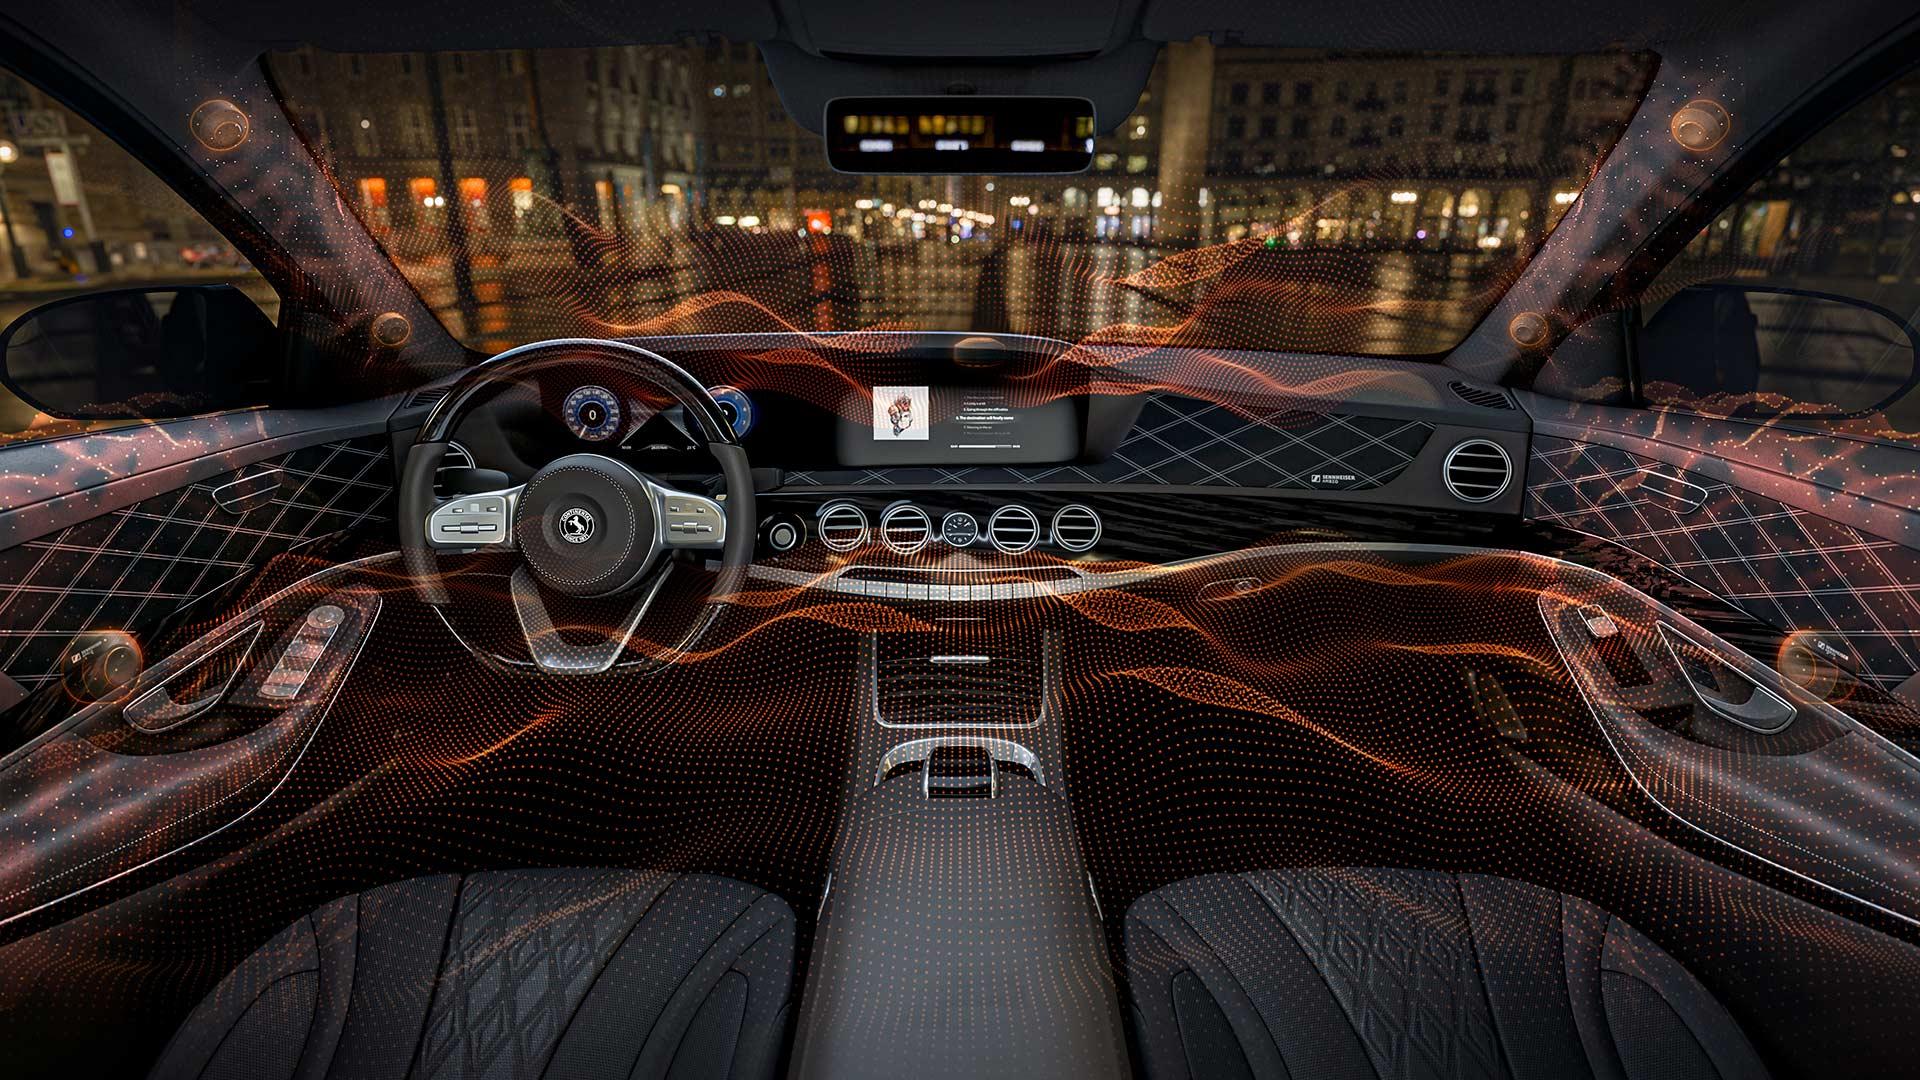 Best automotive tech at CES 2020